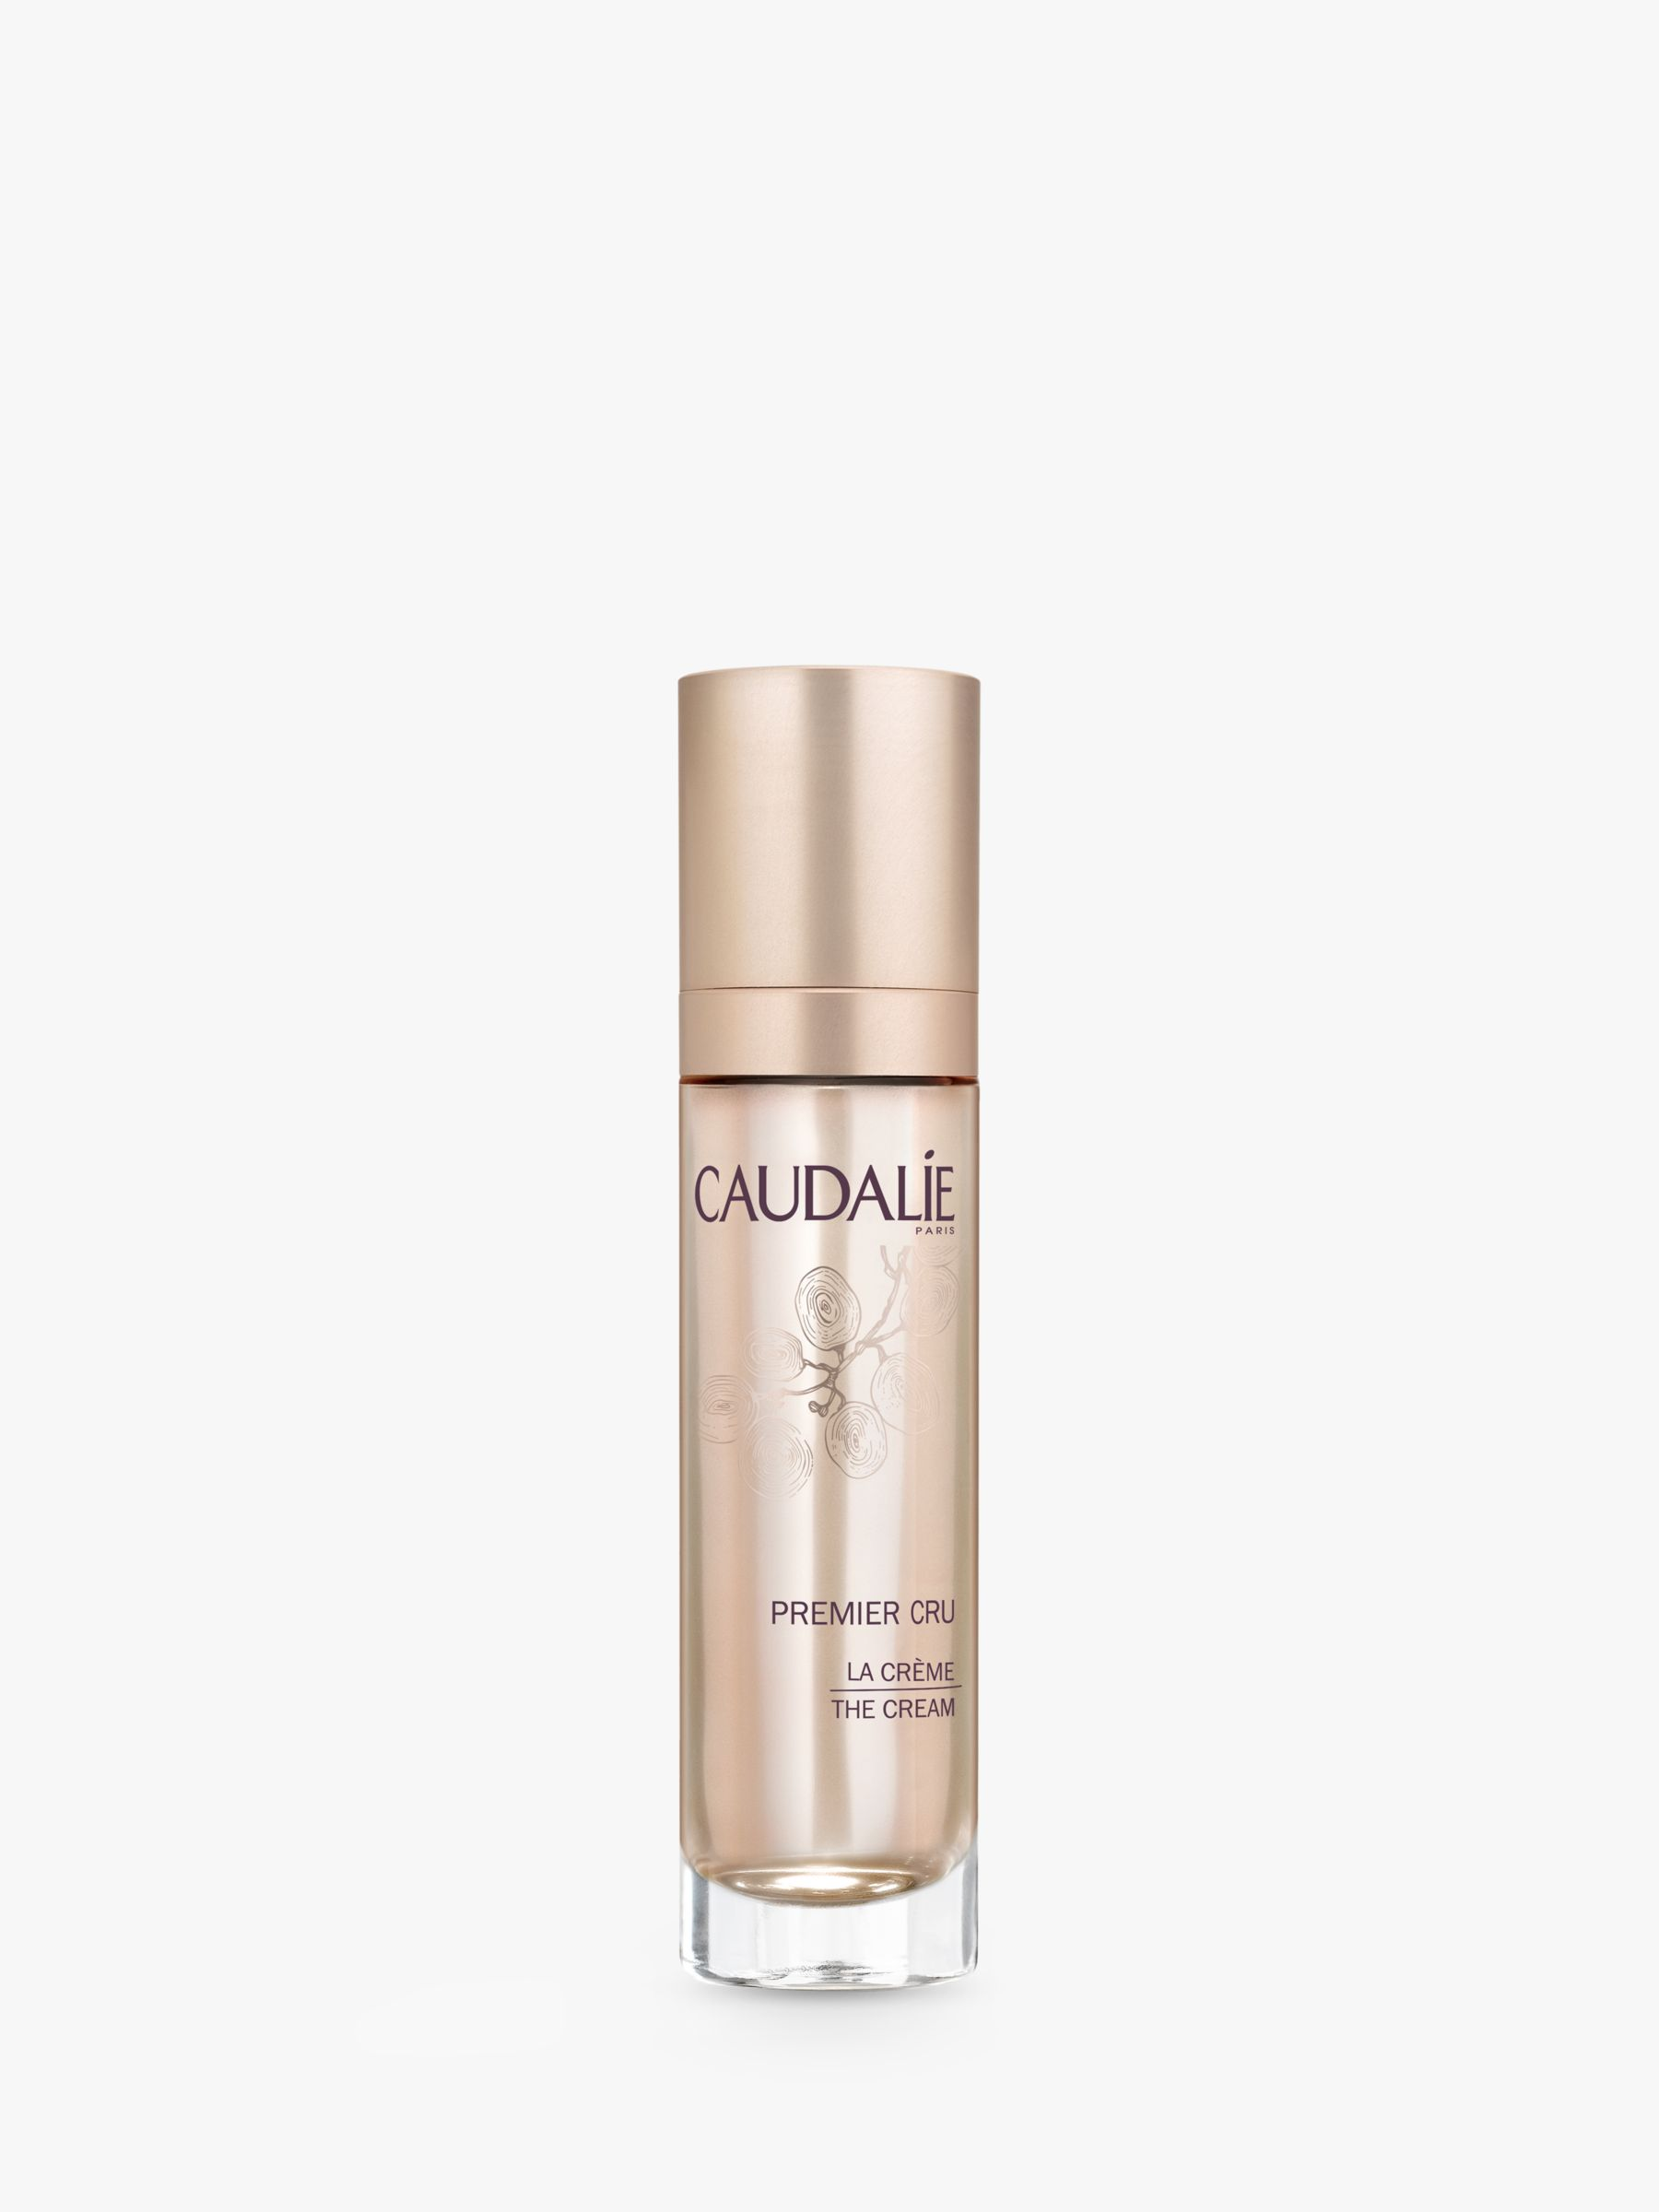 Caudalie Caudalie Premier Cru The Cream, 50ml